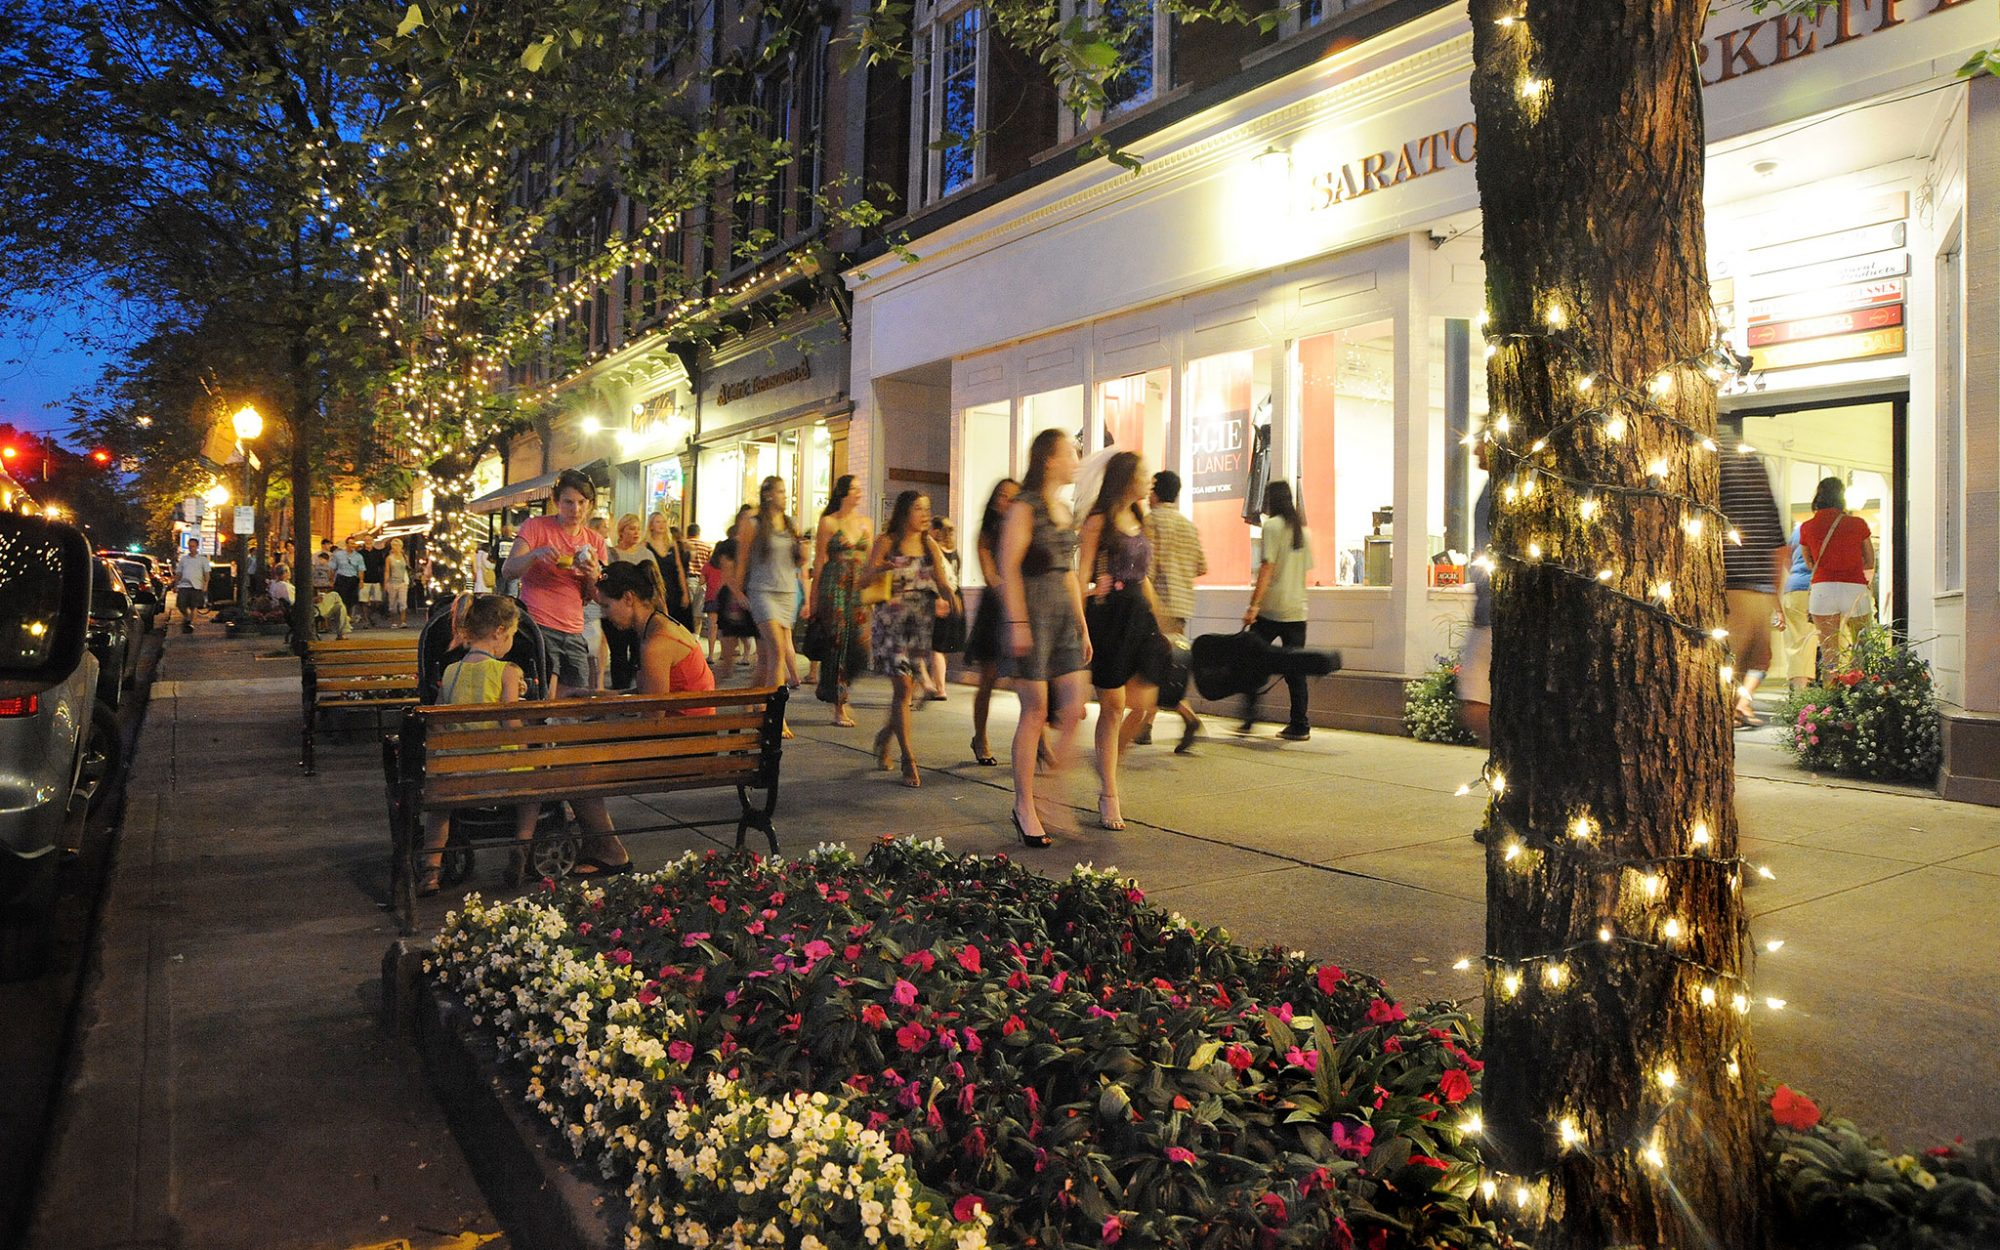 America's greatest main streets: Saratoga Springs